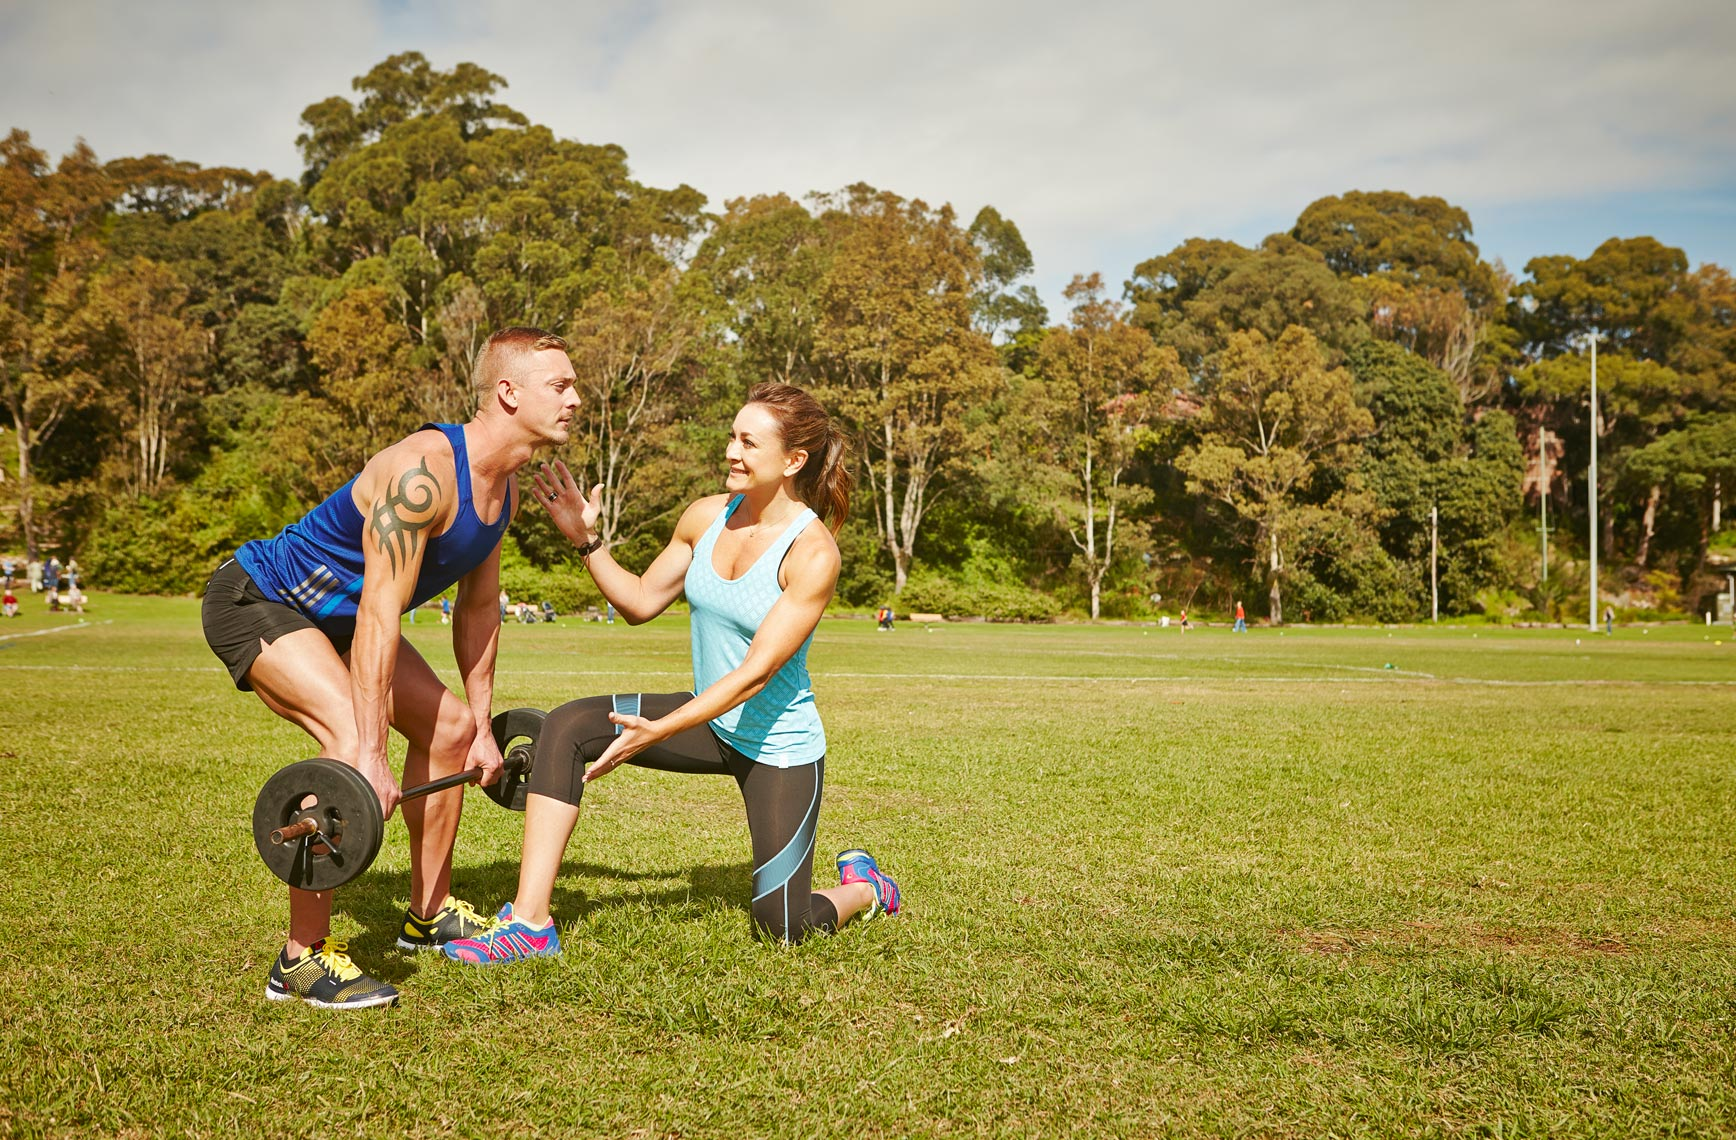 Australia active lifestyle photography